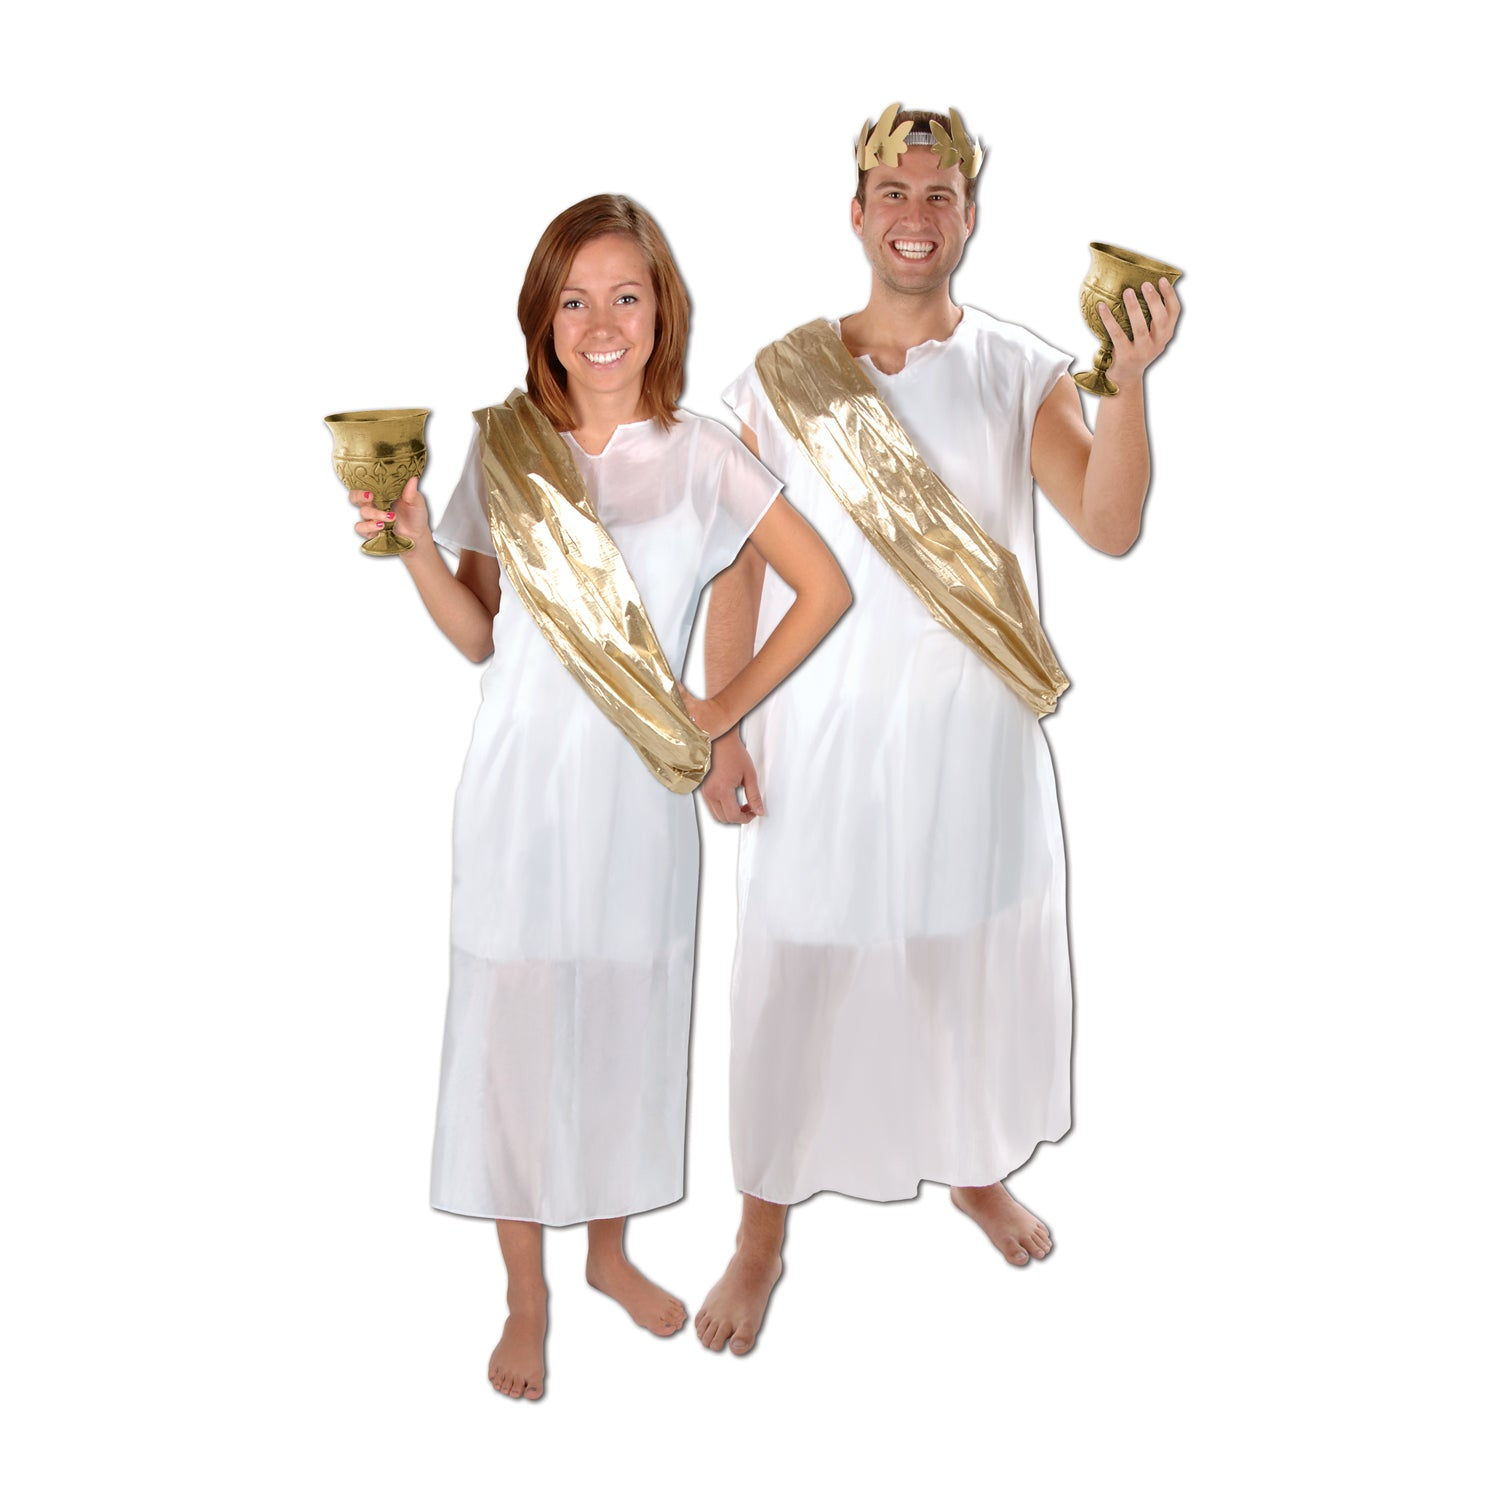 Toga Set by Beistle - Italian Theme Decorations